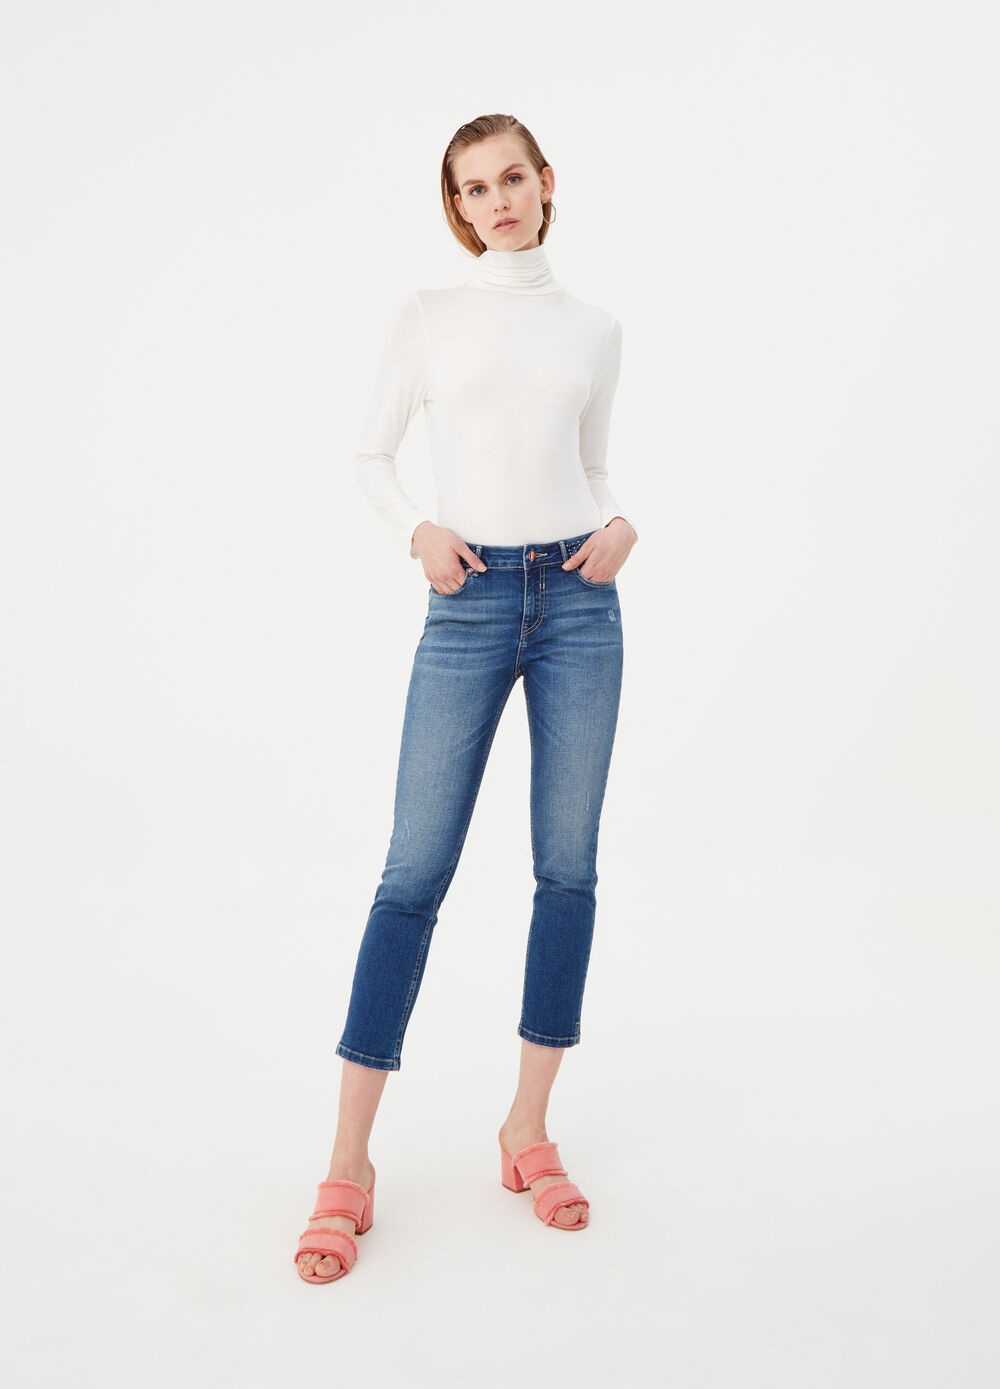 Skinny-fit jeans with studs on the belt